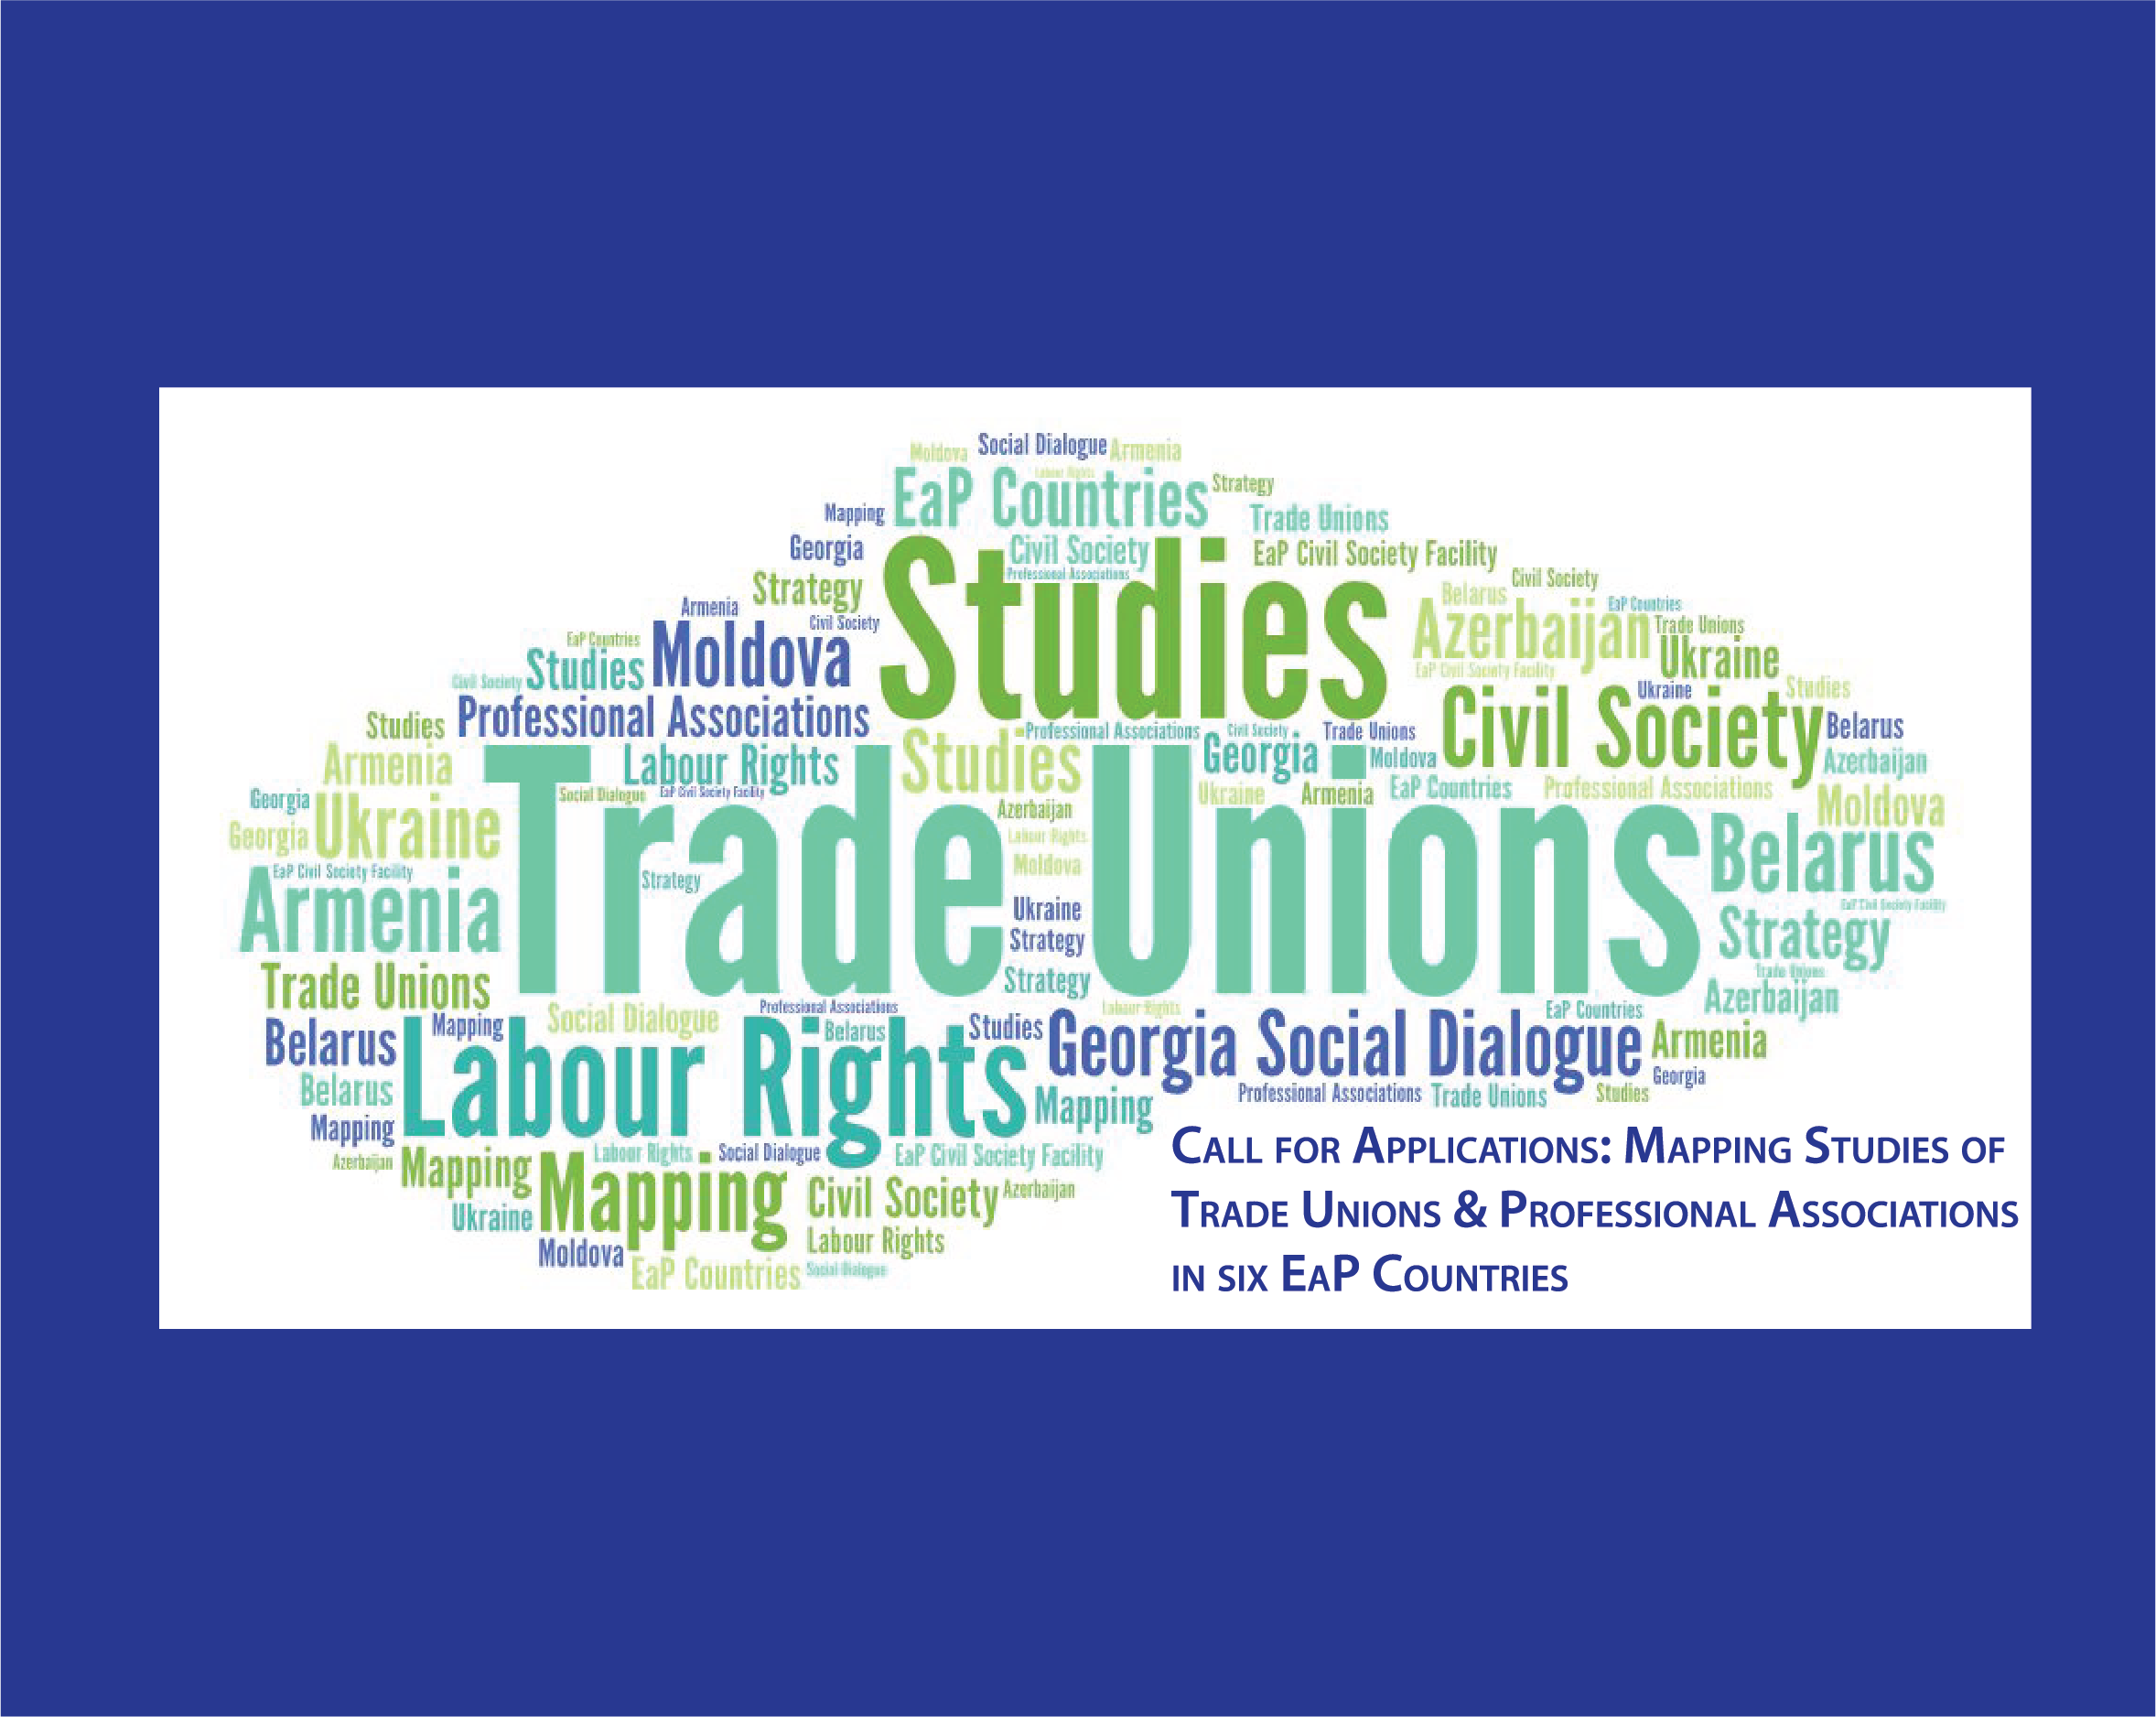 Call for Applications: Mapping Studies of Trade Unions and Professional Associations in EaP Countries